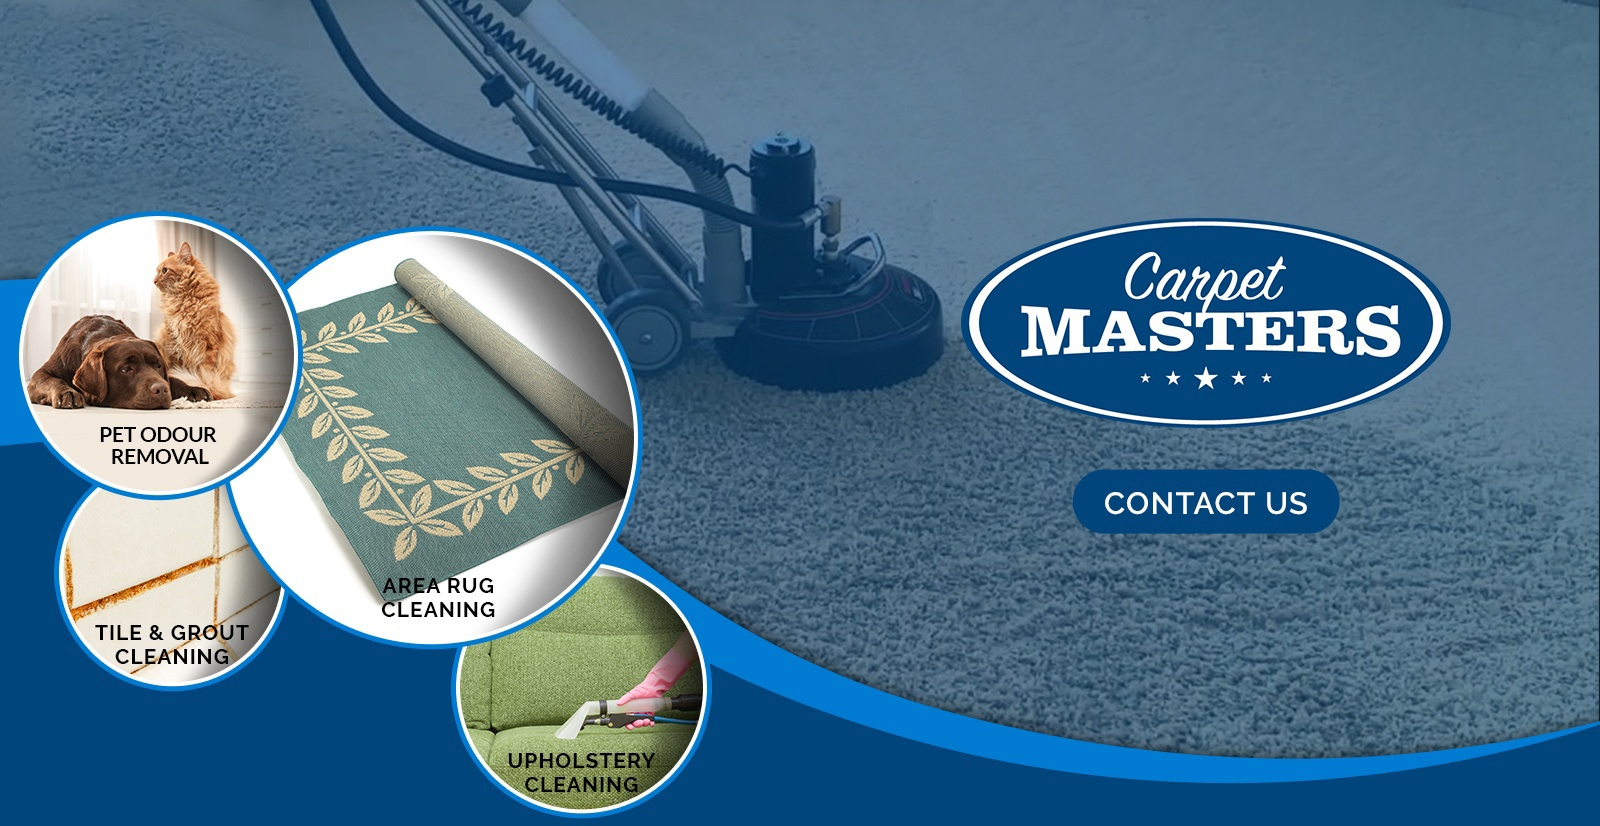 Carpet Masters - Professional Carpet Cleaning Company in Cambridge